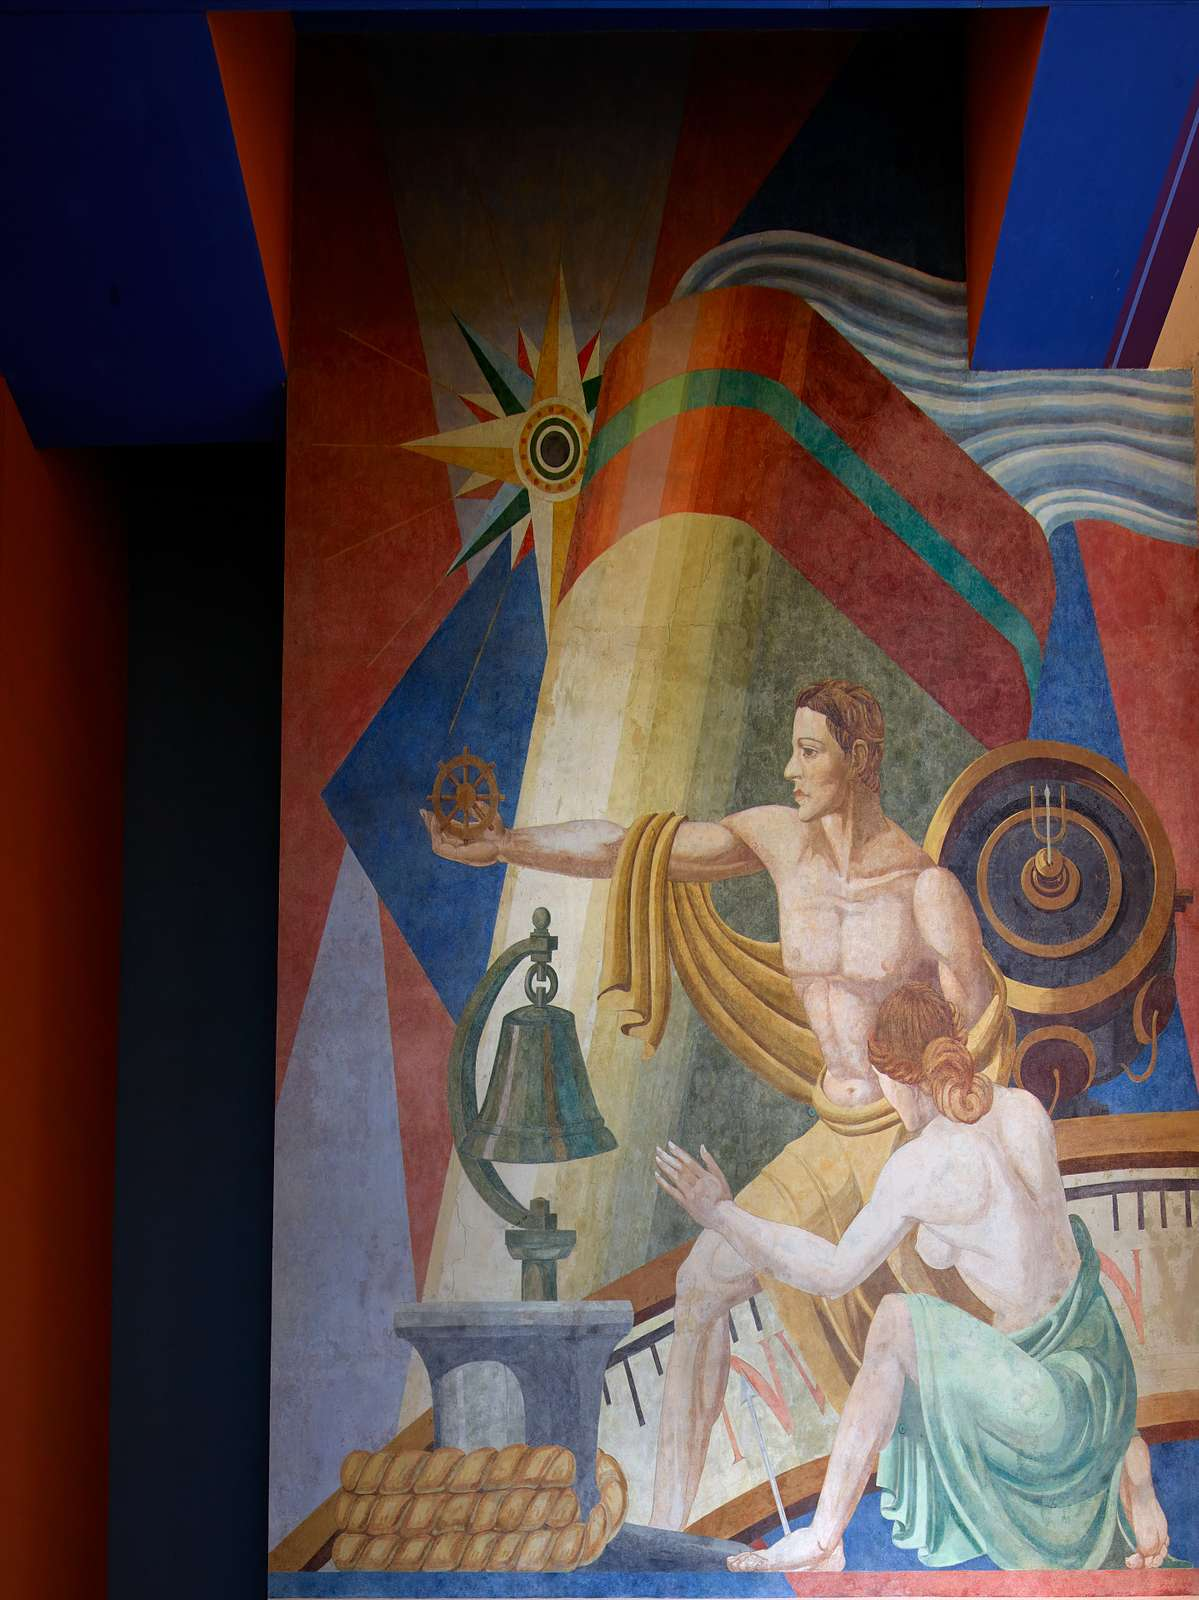 """[Part of a carefully restored mural, """"Navigation"""" by Carlo Ciampaglia, one of dozens at Fair Park, site of the 1936 Texas Centennial celebration and the Pan-American Exposition in 1937 in Dallas, Texas]"""